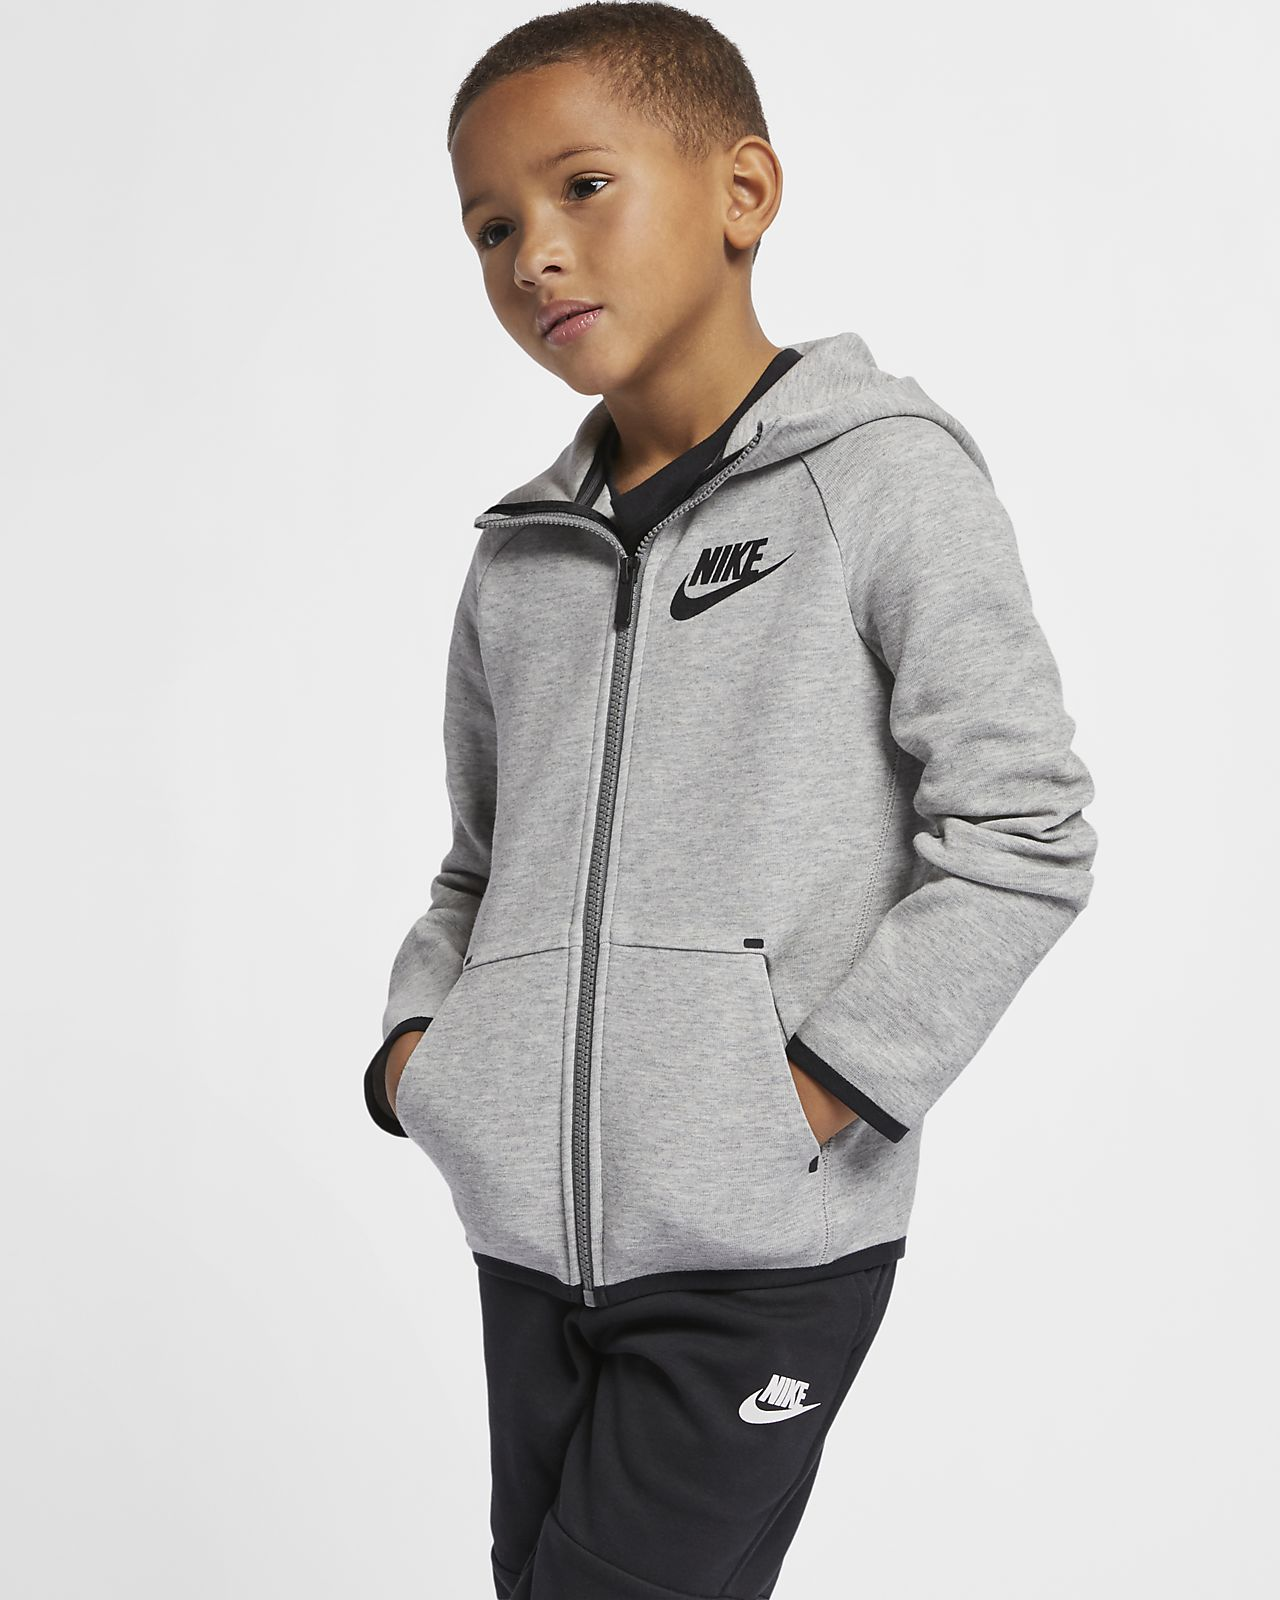 Huvtröja Nike Sportswear Tech Fleece för barn